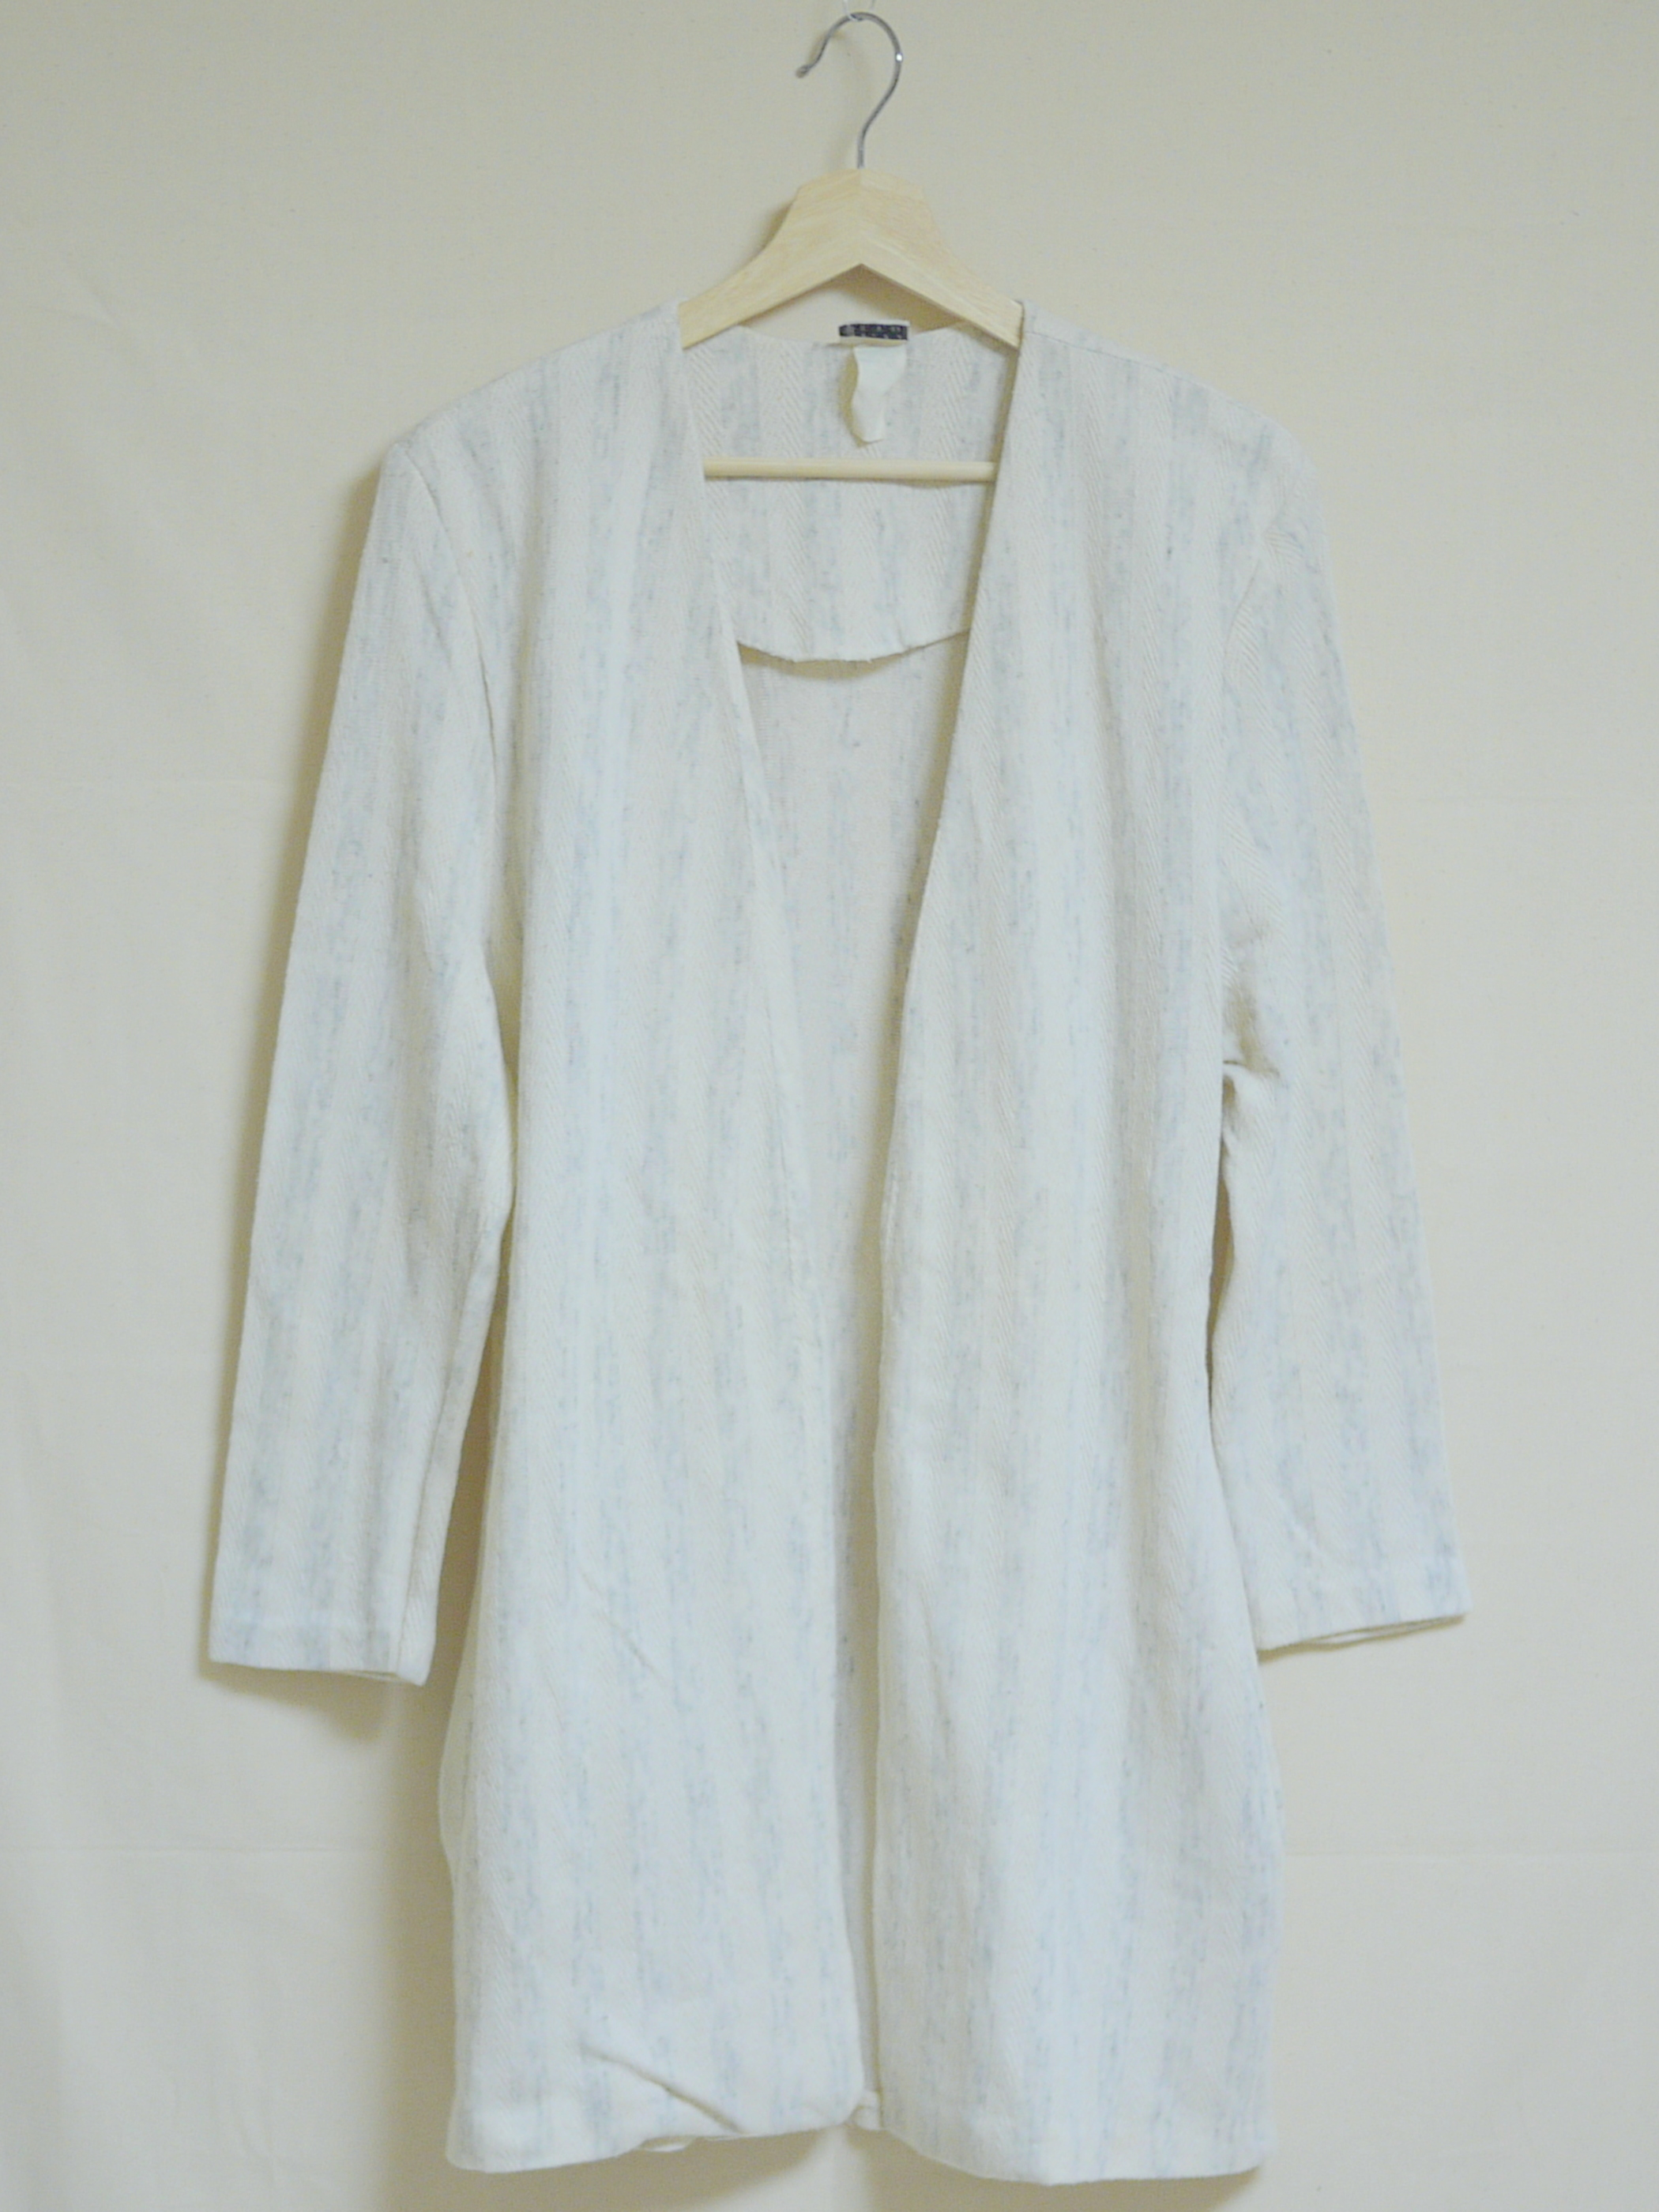 B.D.LTD. Cotton knit cardigan Size15/16